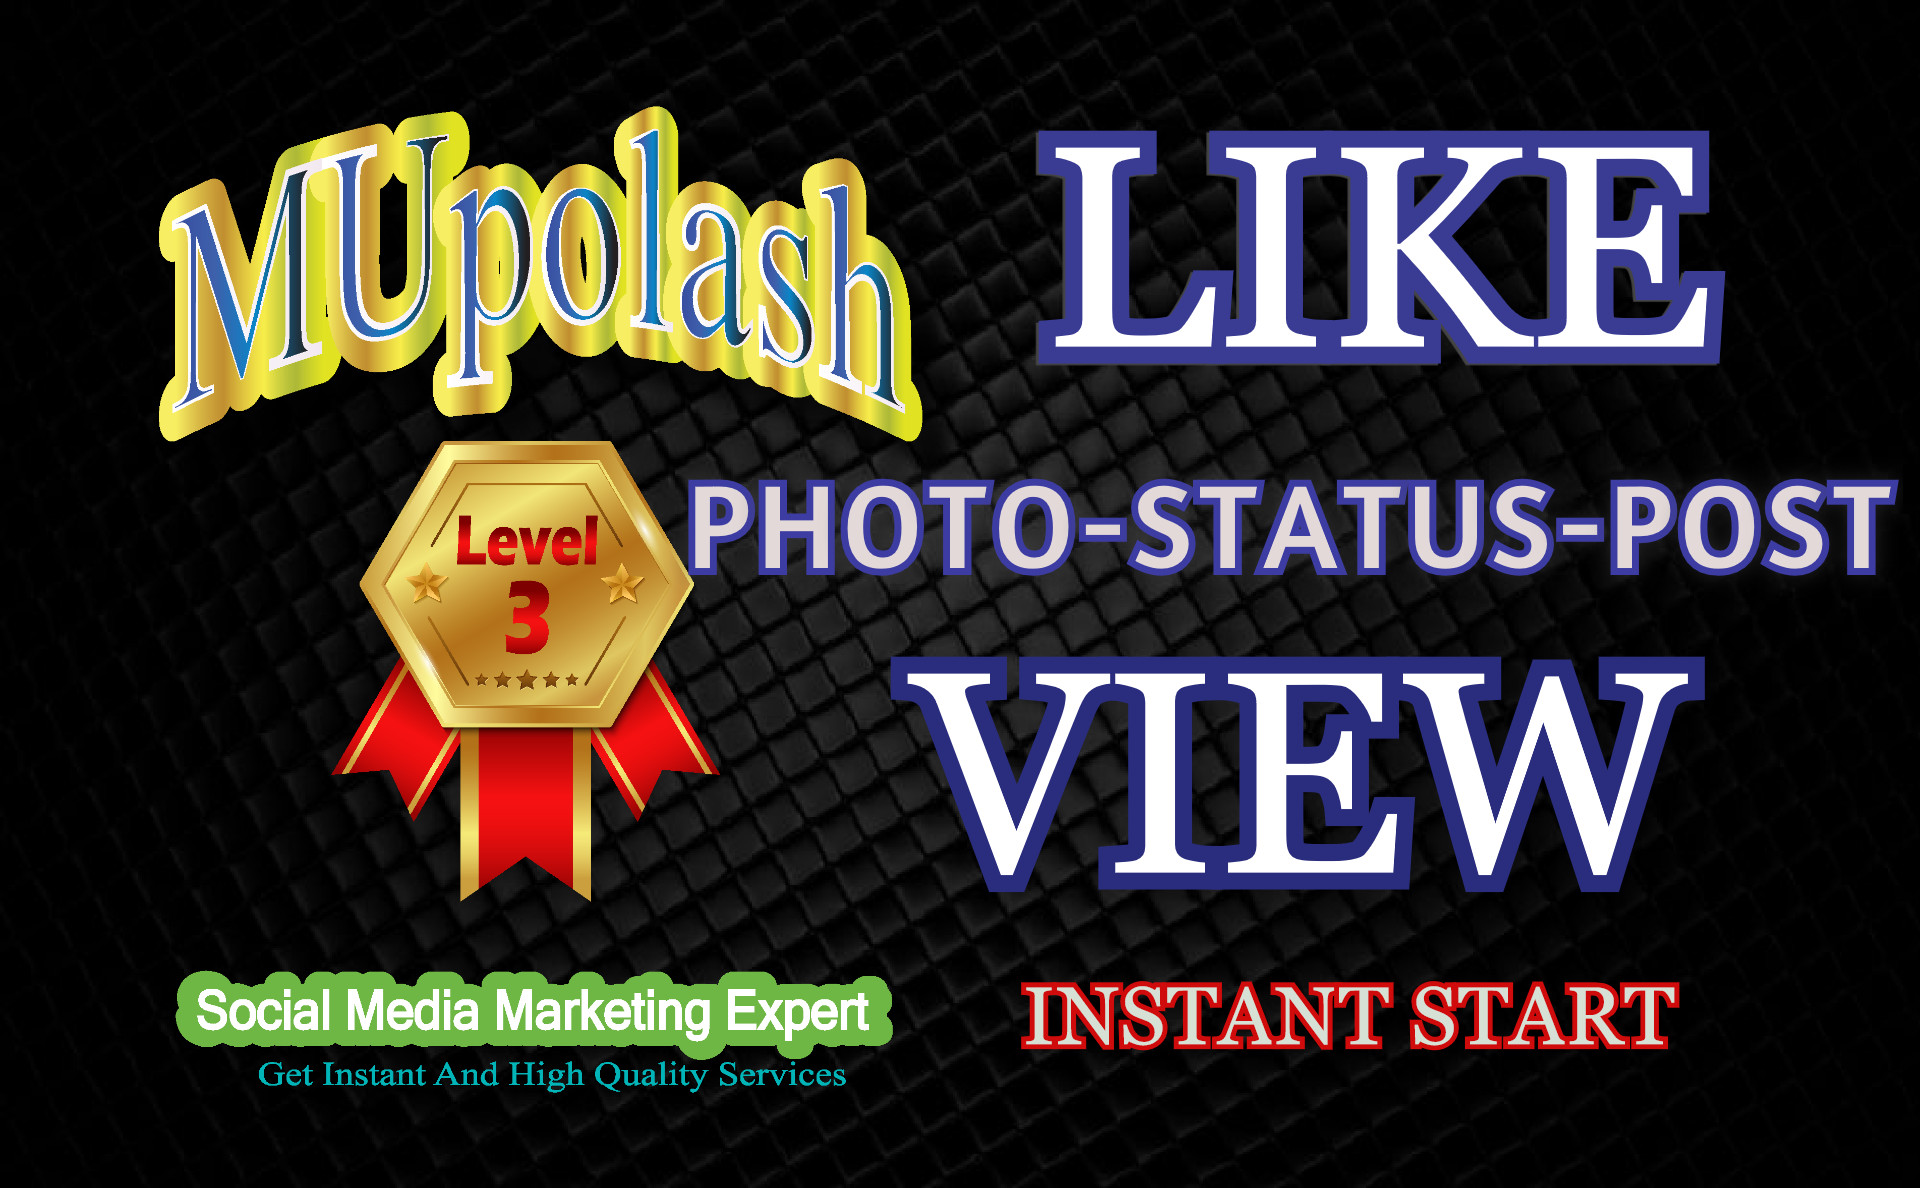 Get instant reaction on post / photos /videos. Non-drop, high quality.